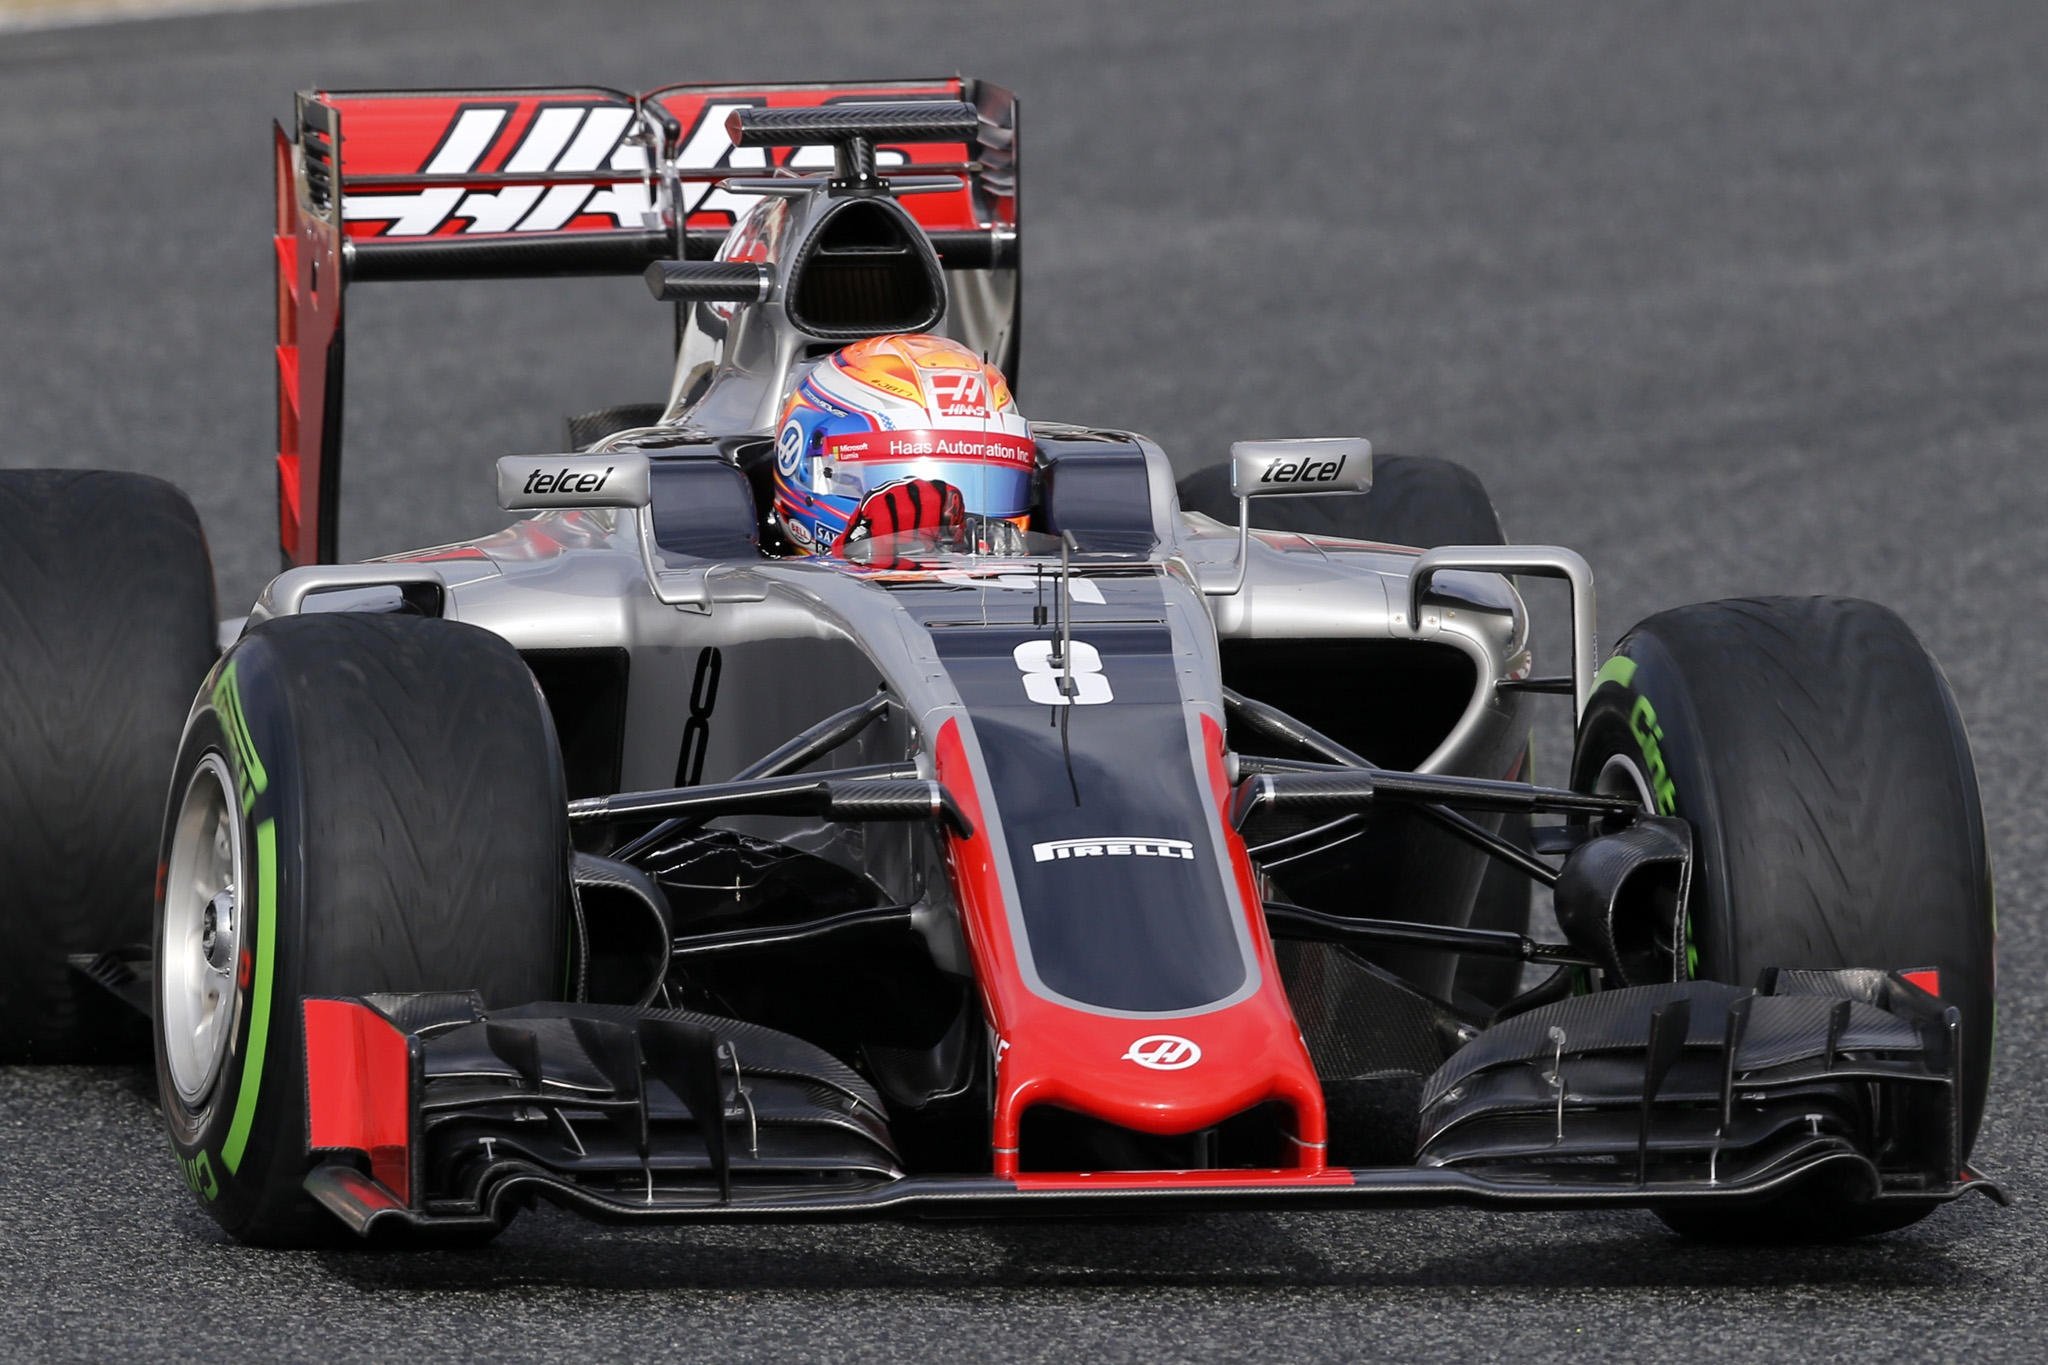 Romain Grosjean Haas F1 Vr16 Barcelona Test 22 2 2016 On Track Maxf1net